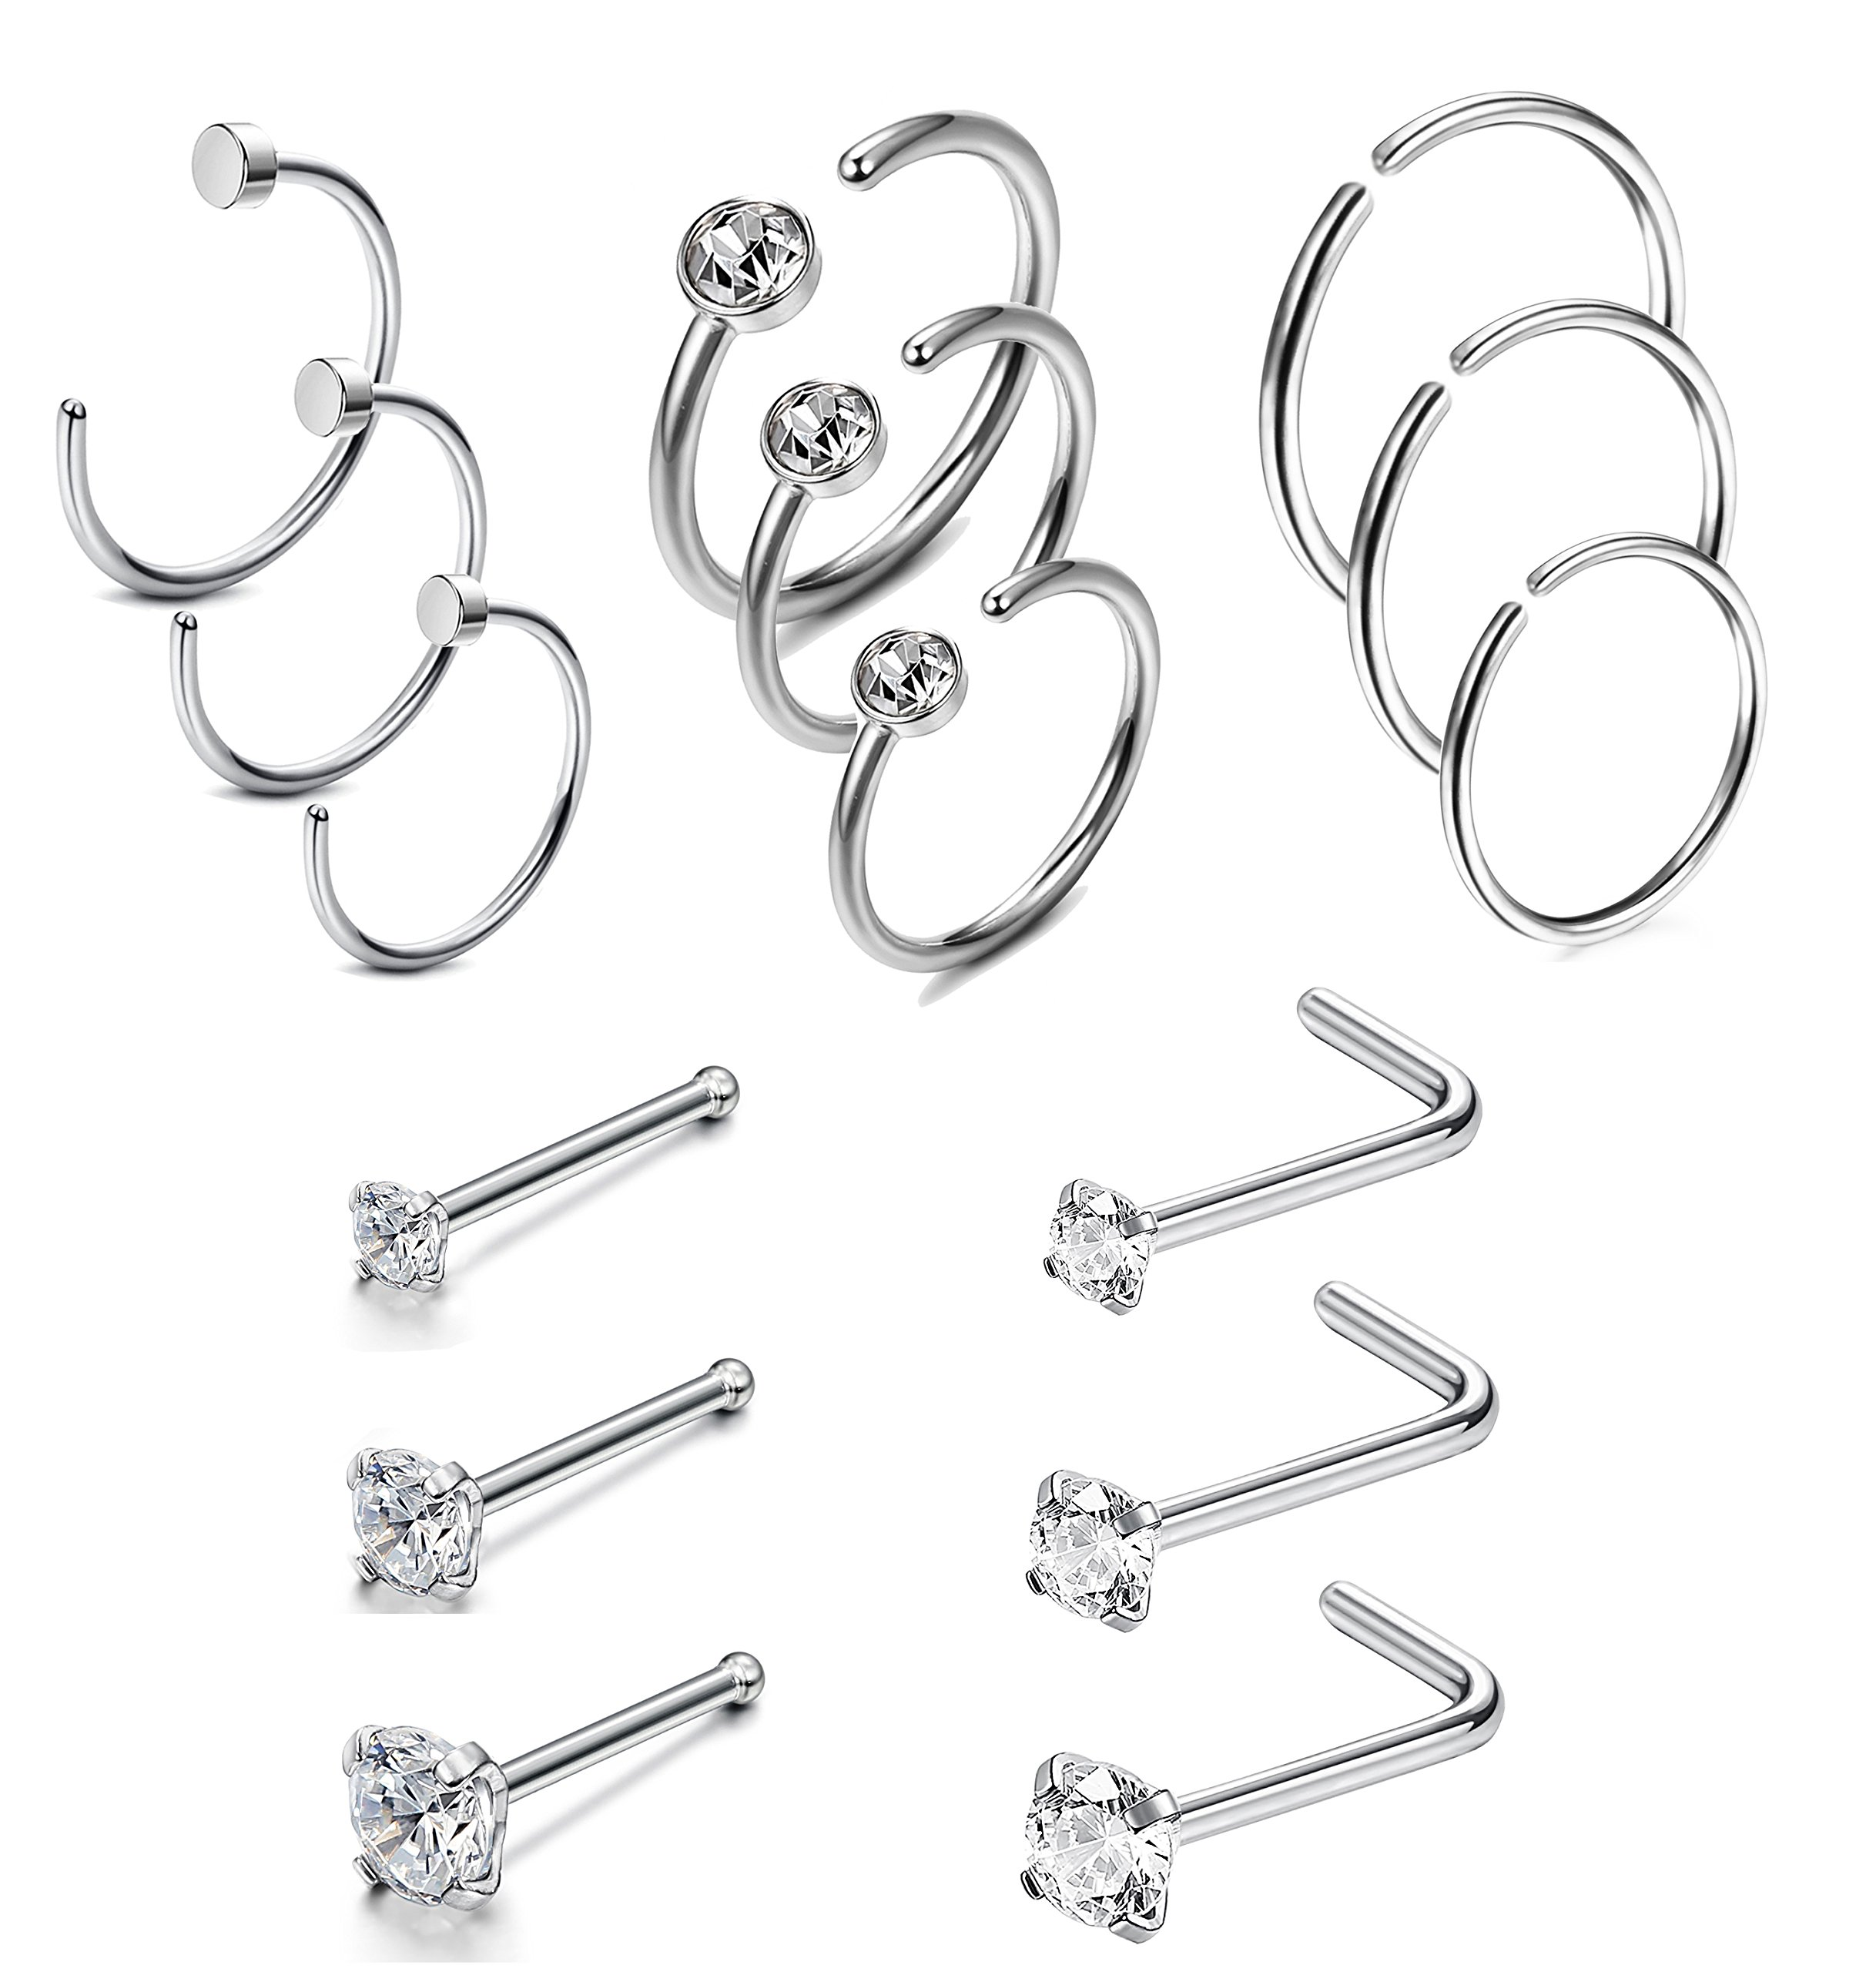 Jstyle 20G 15Pcs Stainless Steel Nose Rings Studs Hoop Piercing Body Jewelry Silver Tone by Jstyle